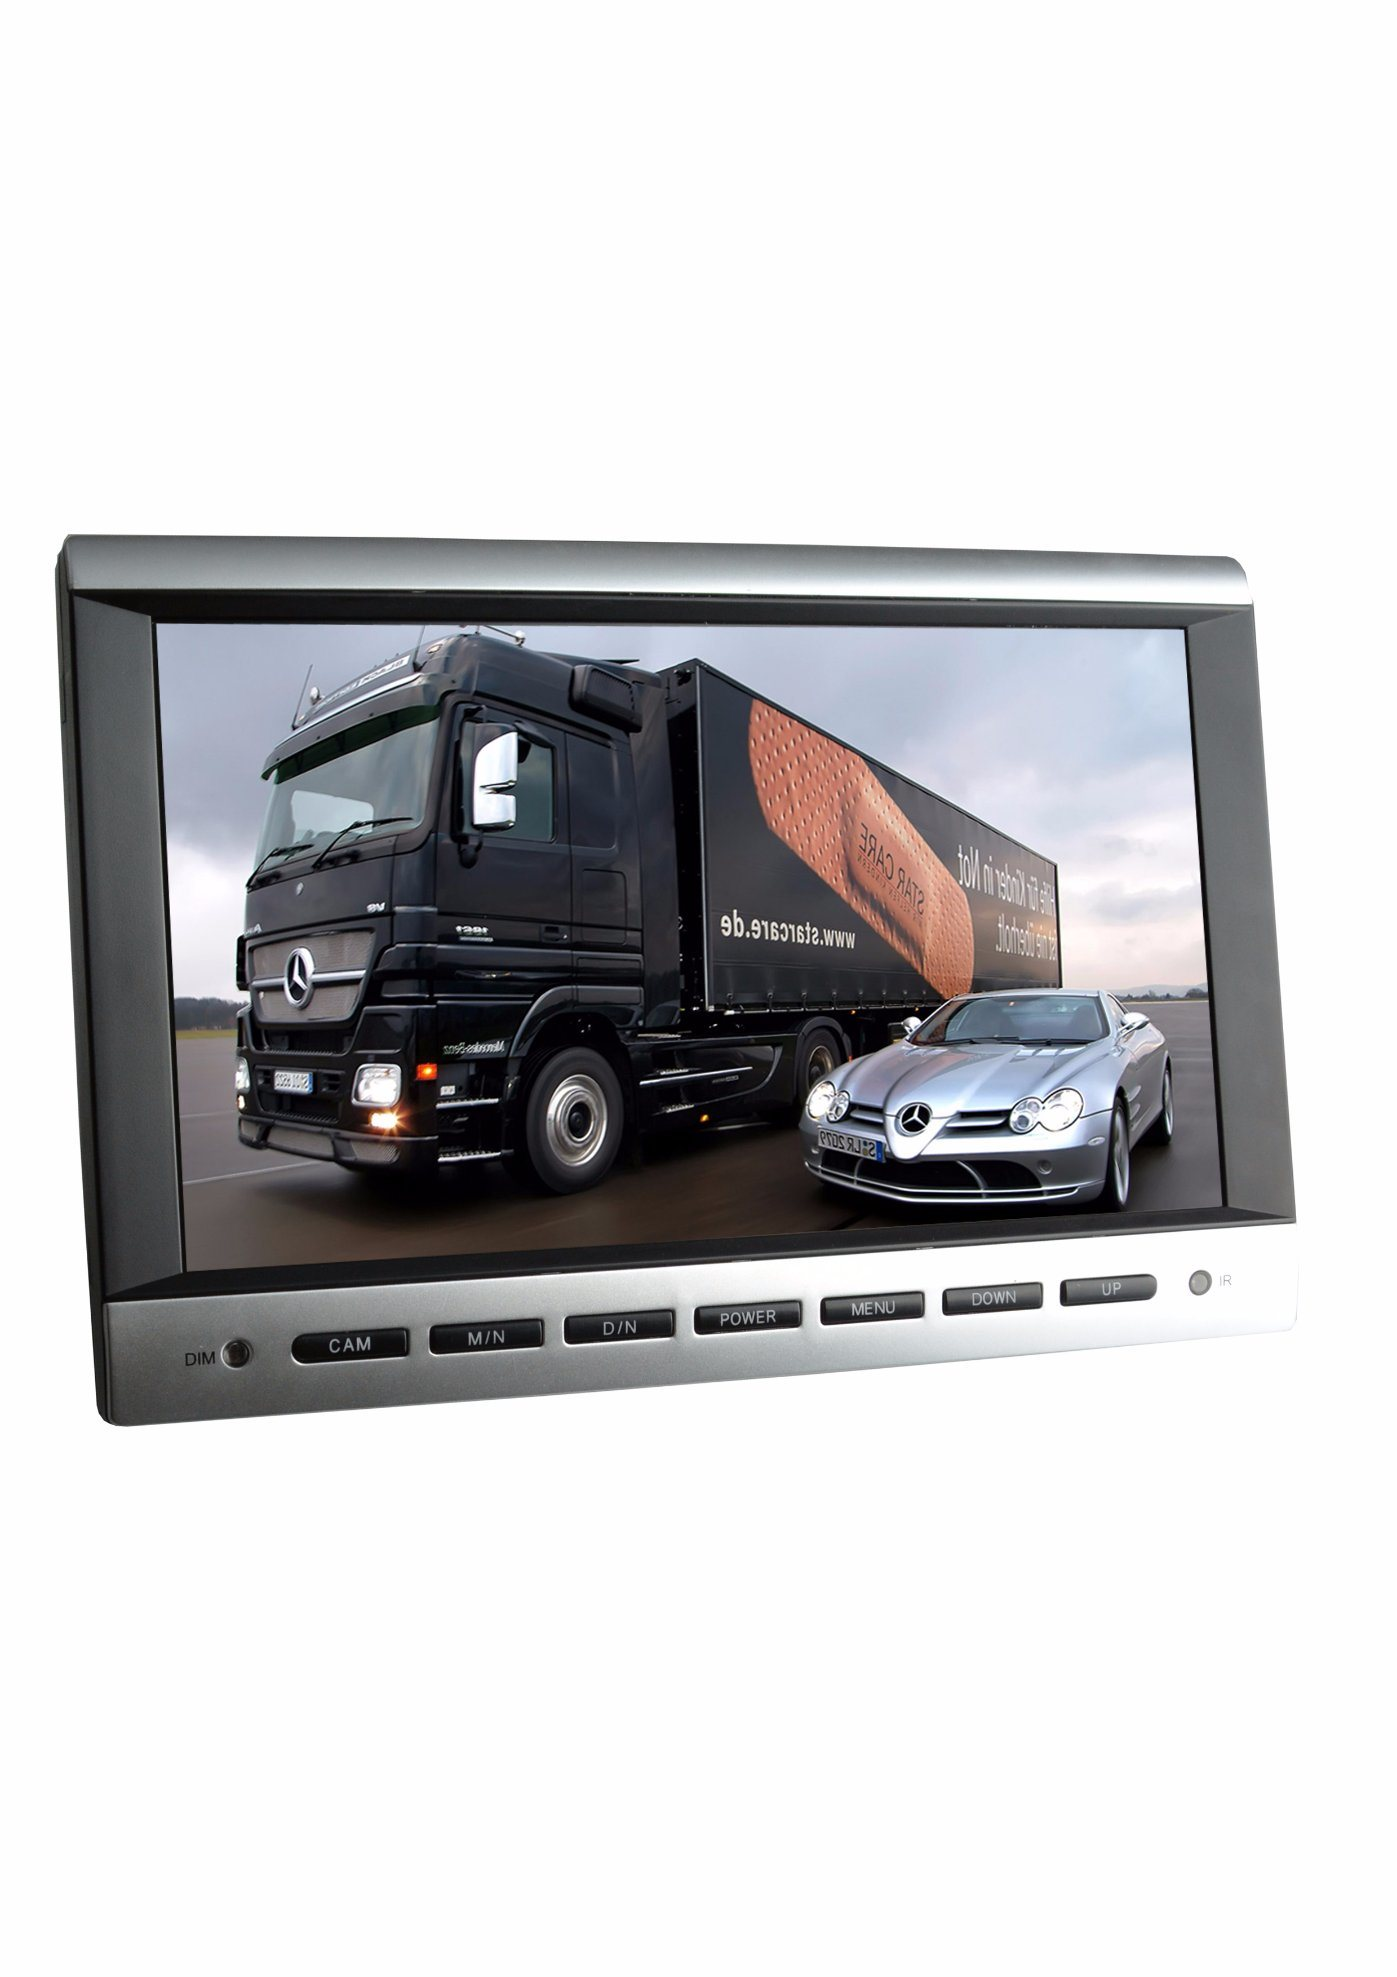 10 Inch Truck Rearview System with 2 CH Input Camera